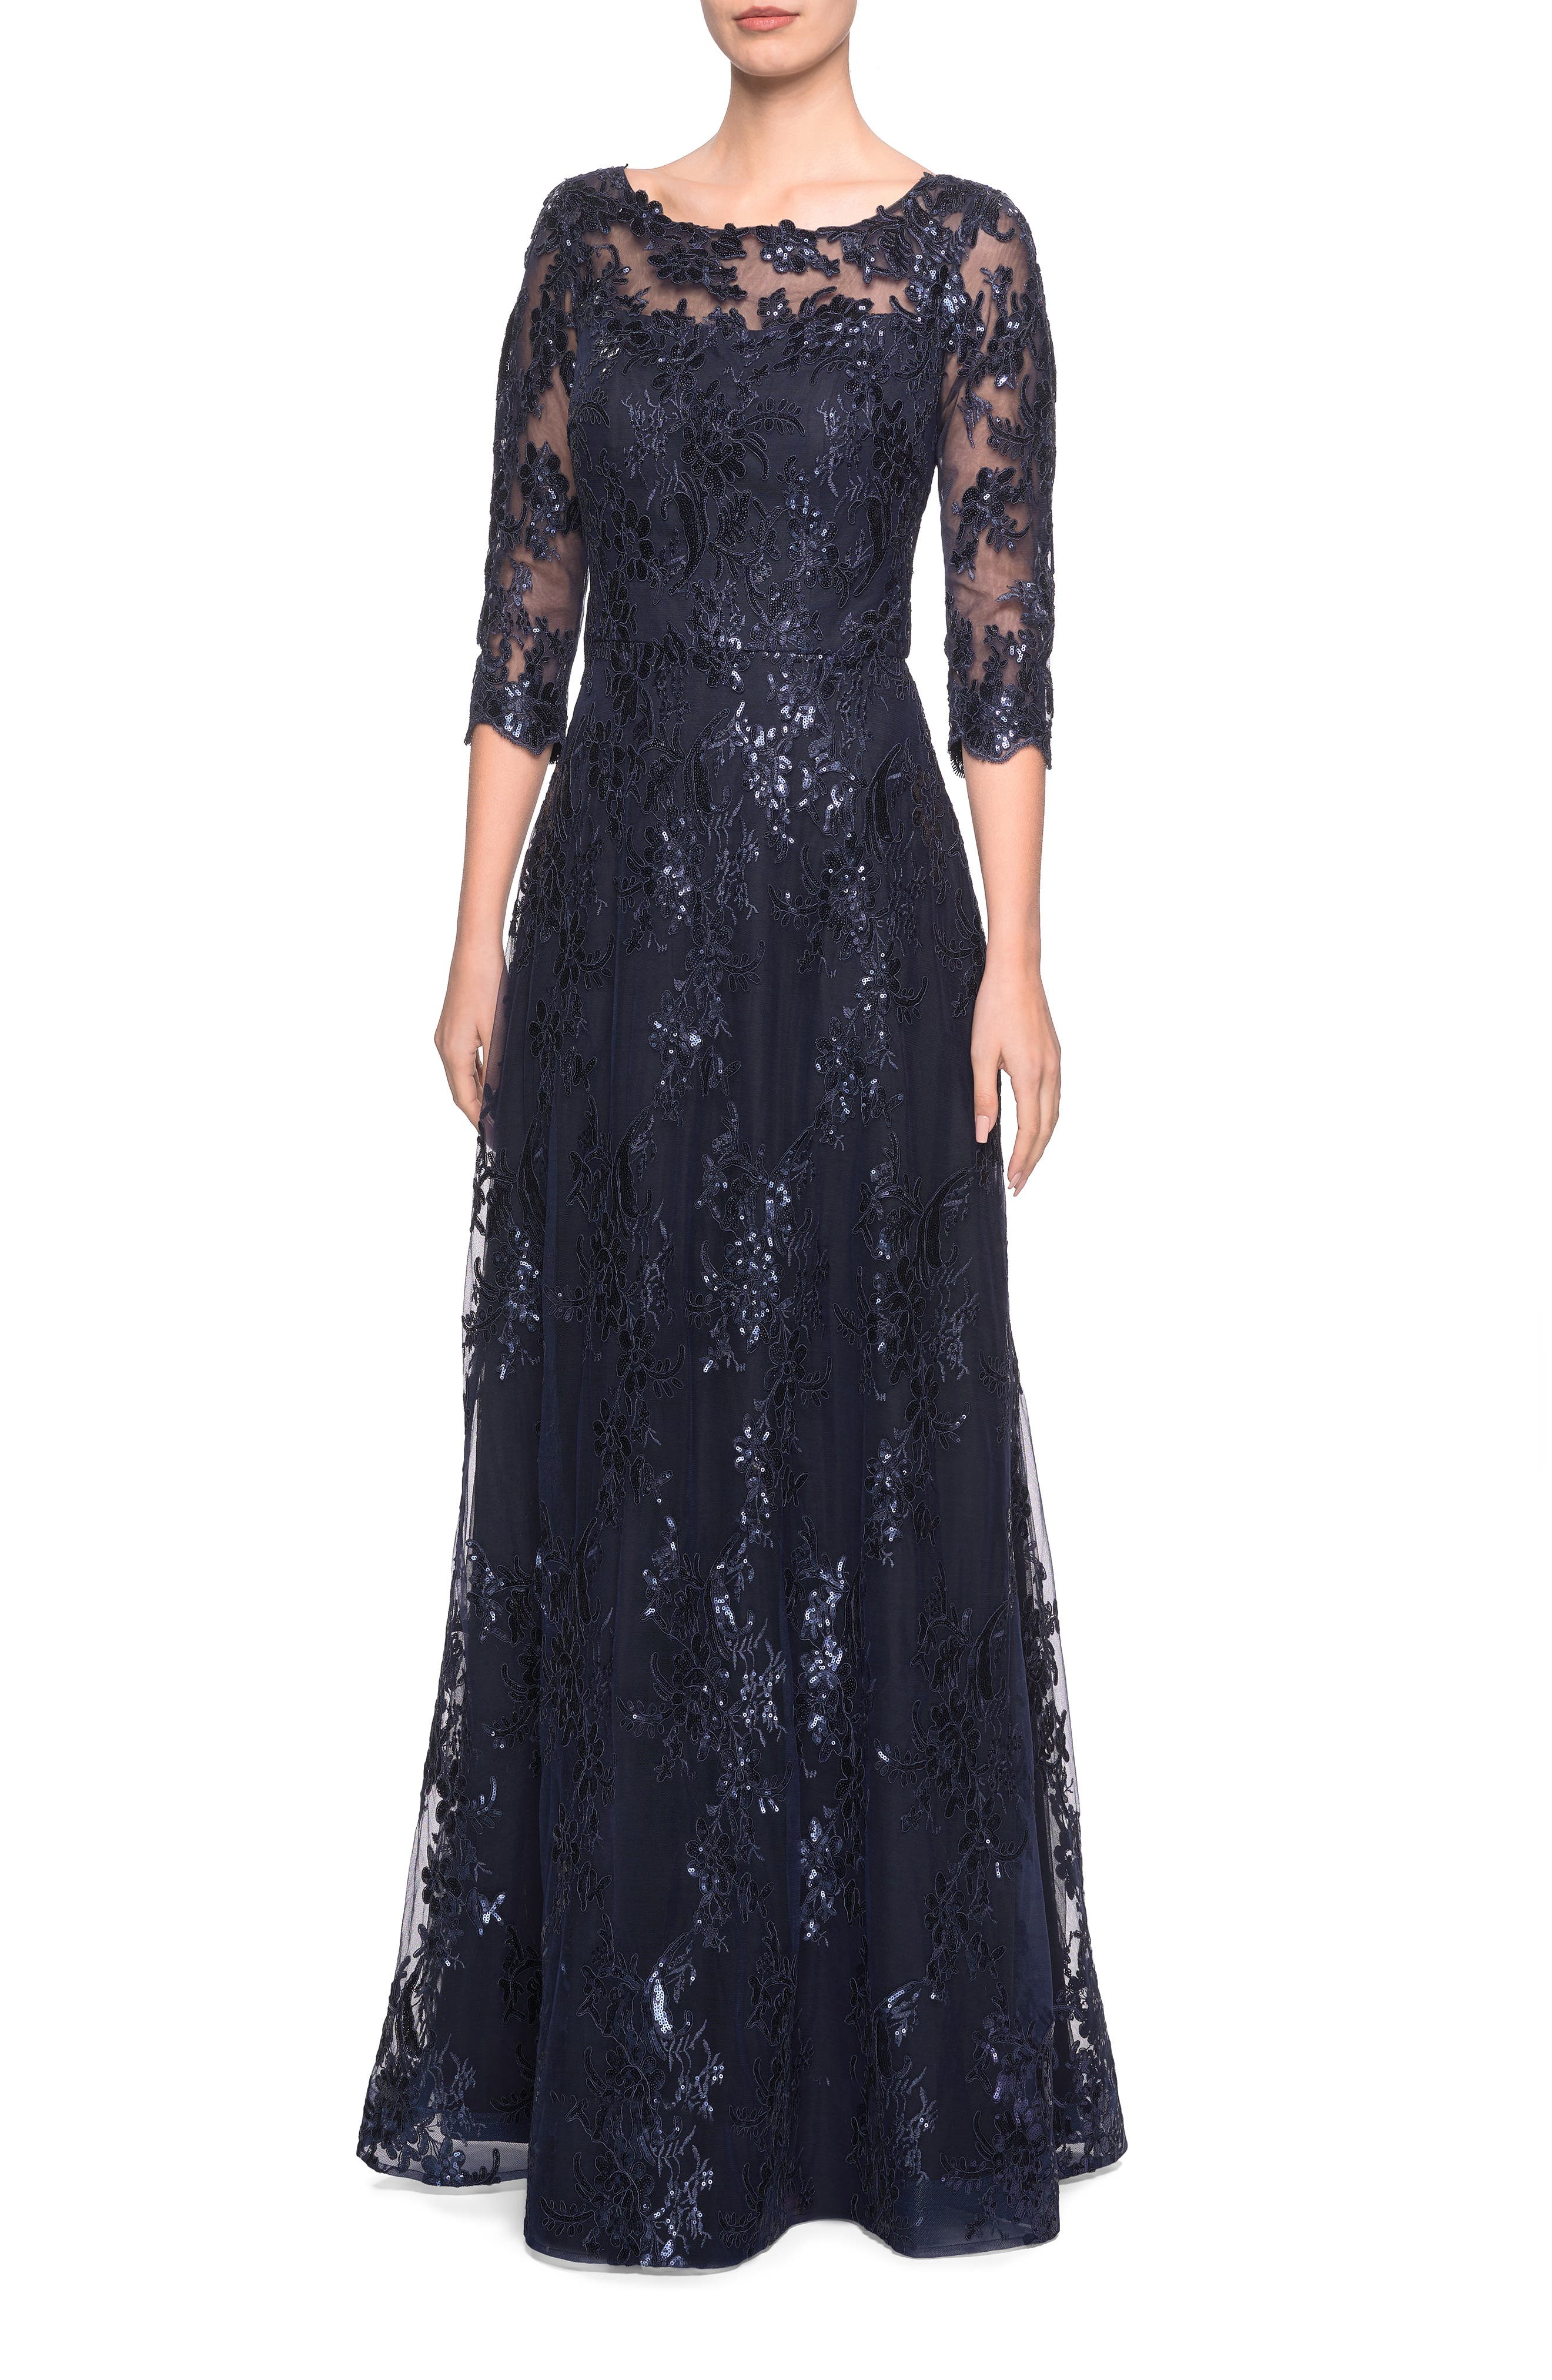 Shimmer Sequin Lace Evening Dress, Main, color, NAVY